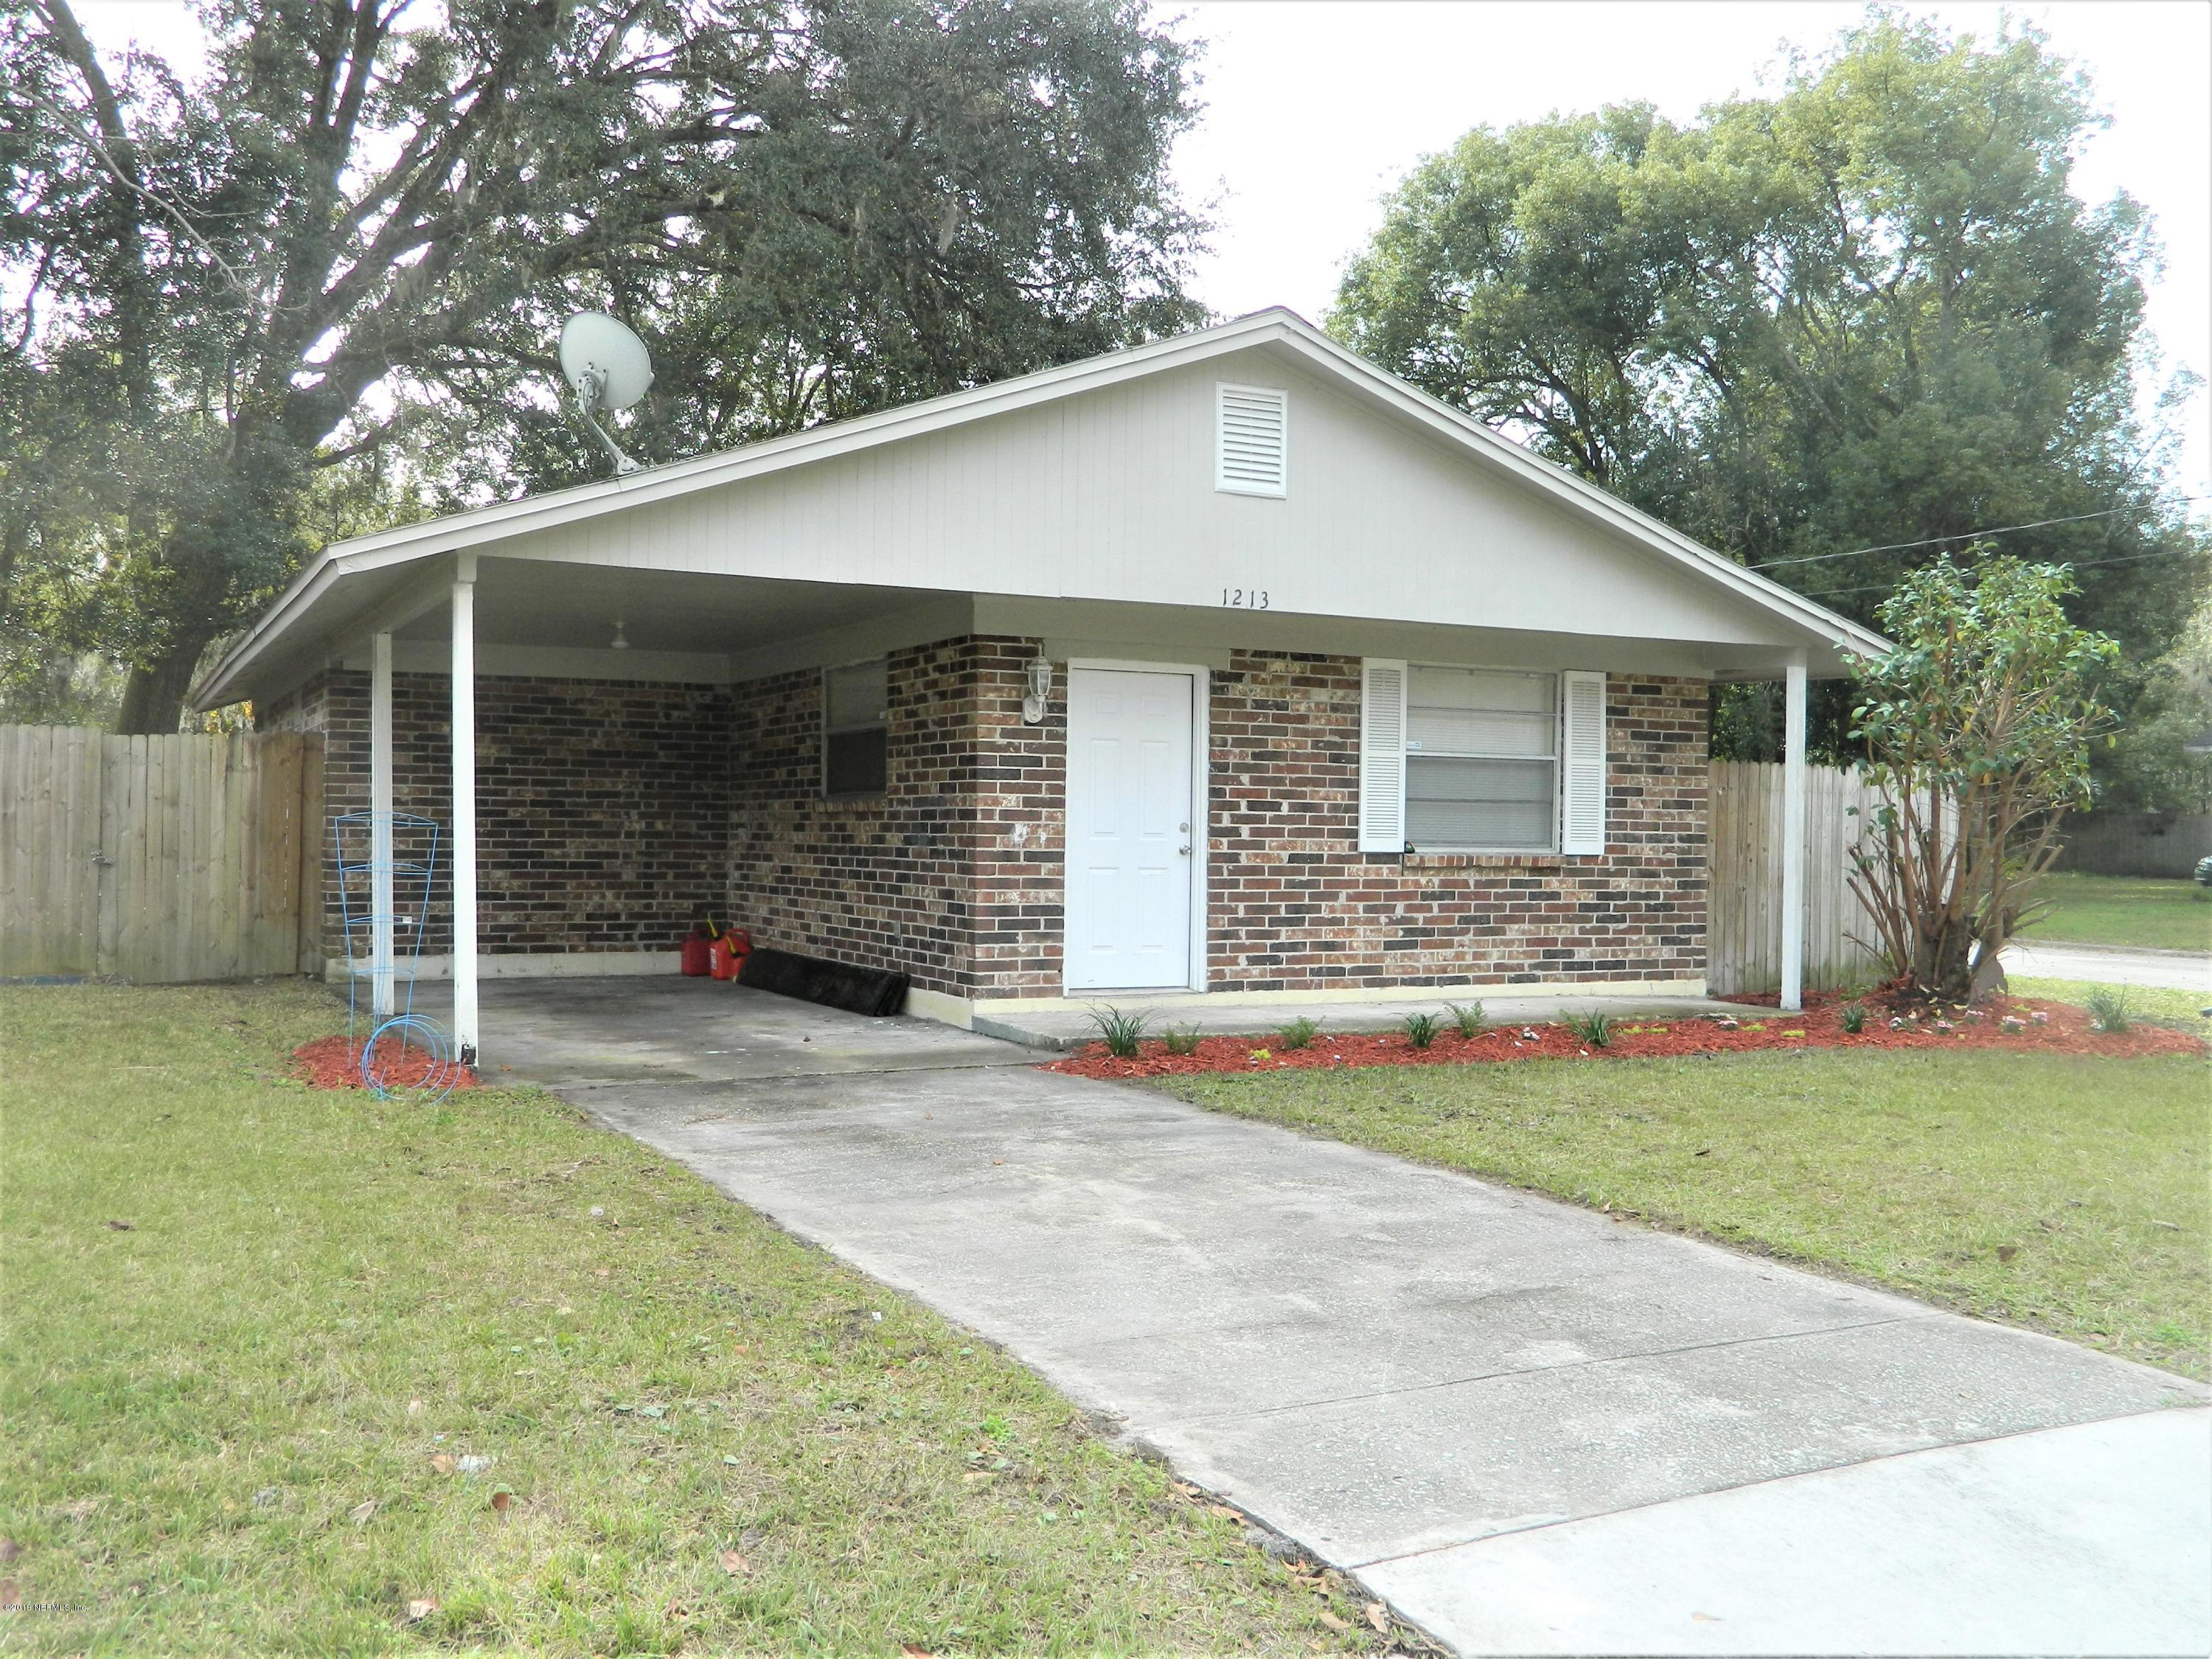 Photo of 1213 SPRUCE, GREEN COVE SPRINGS, FL 32043